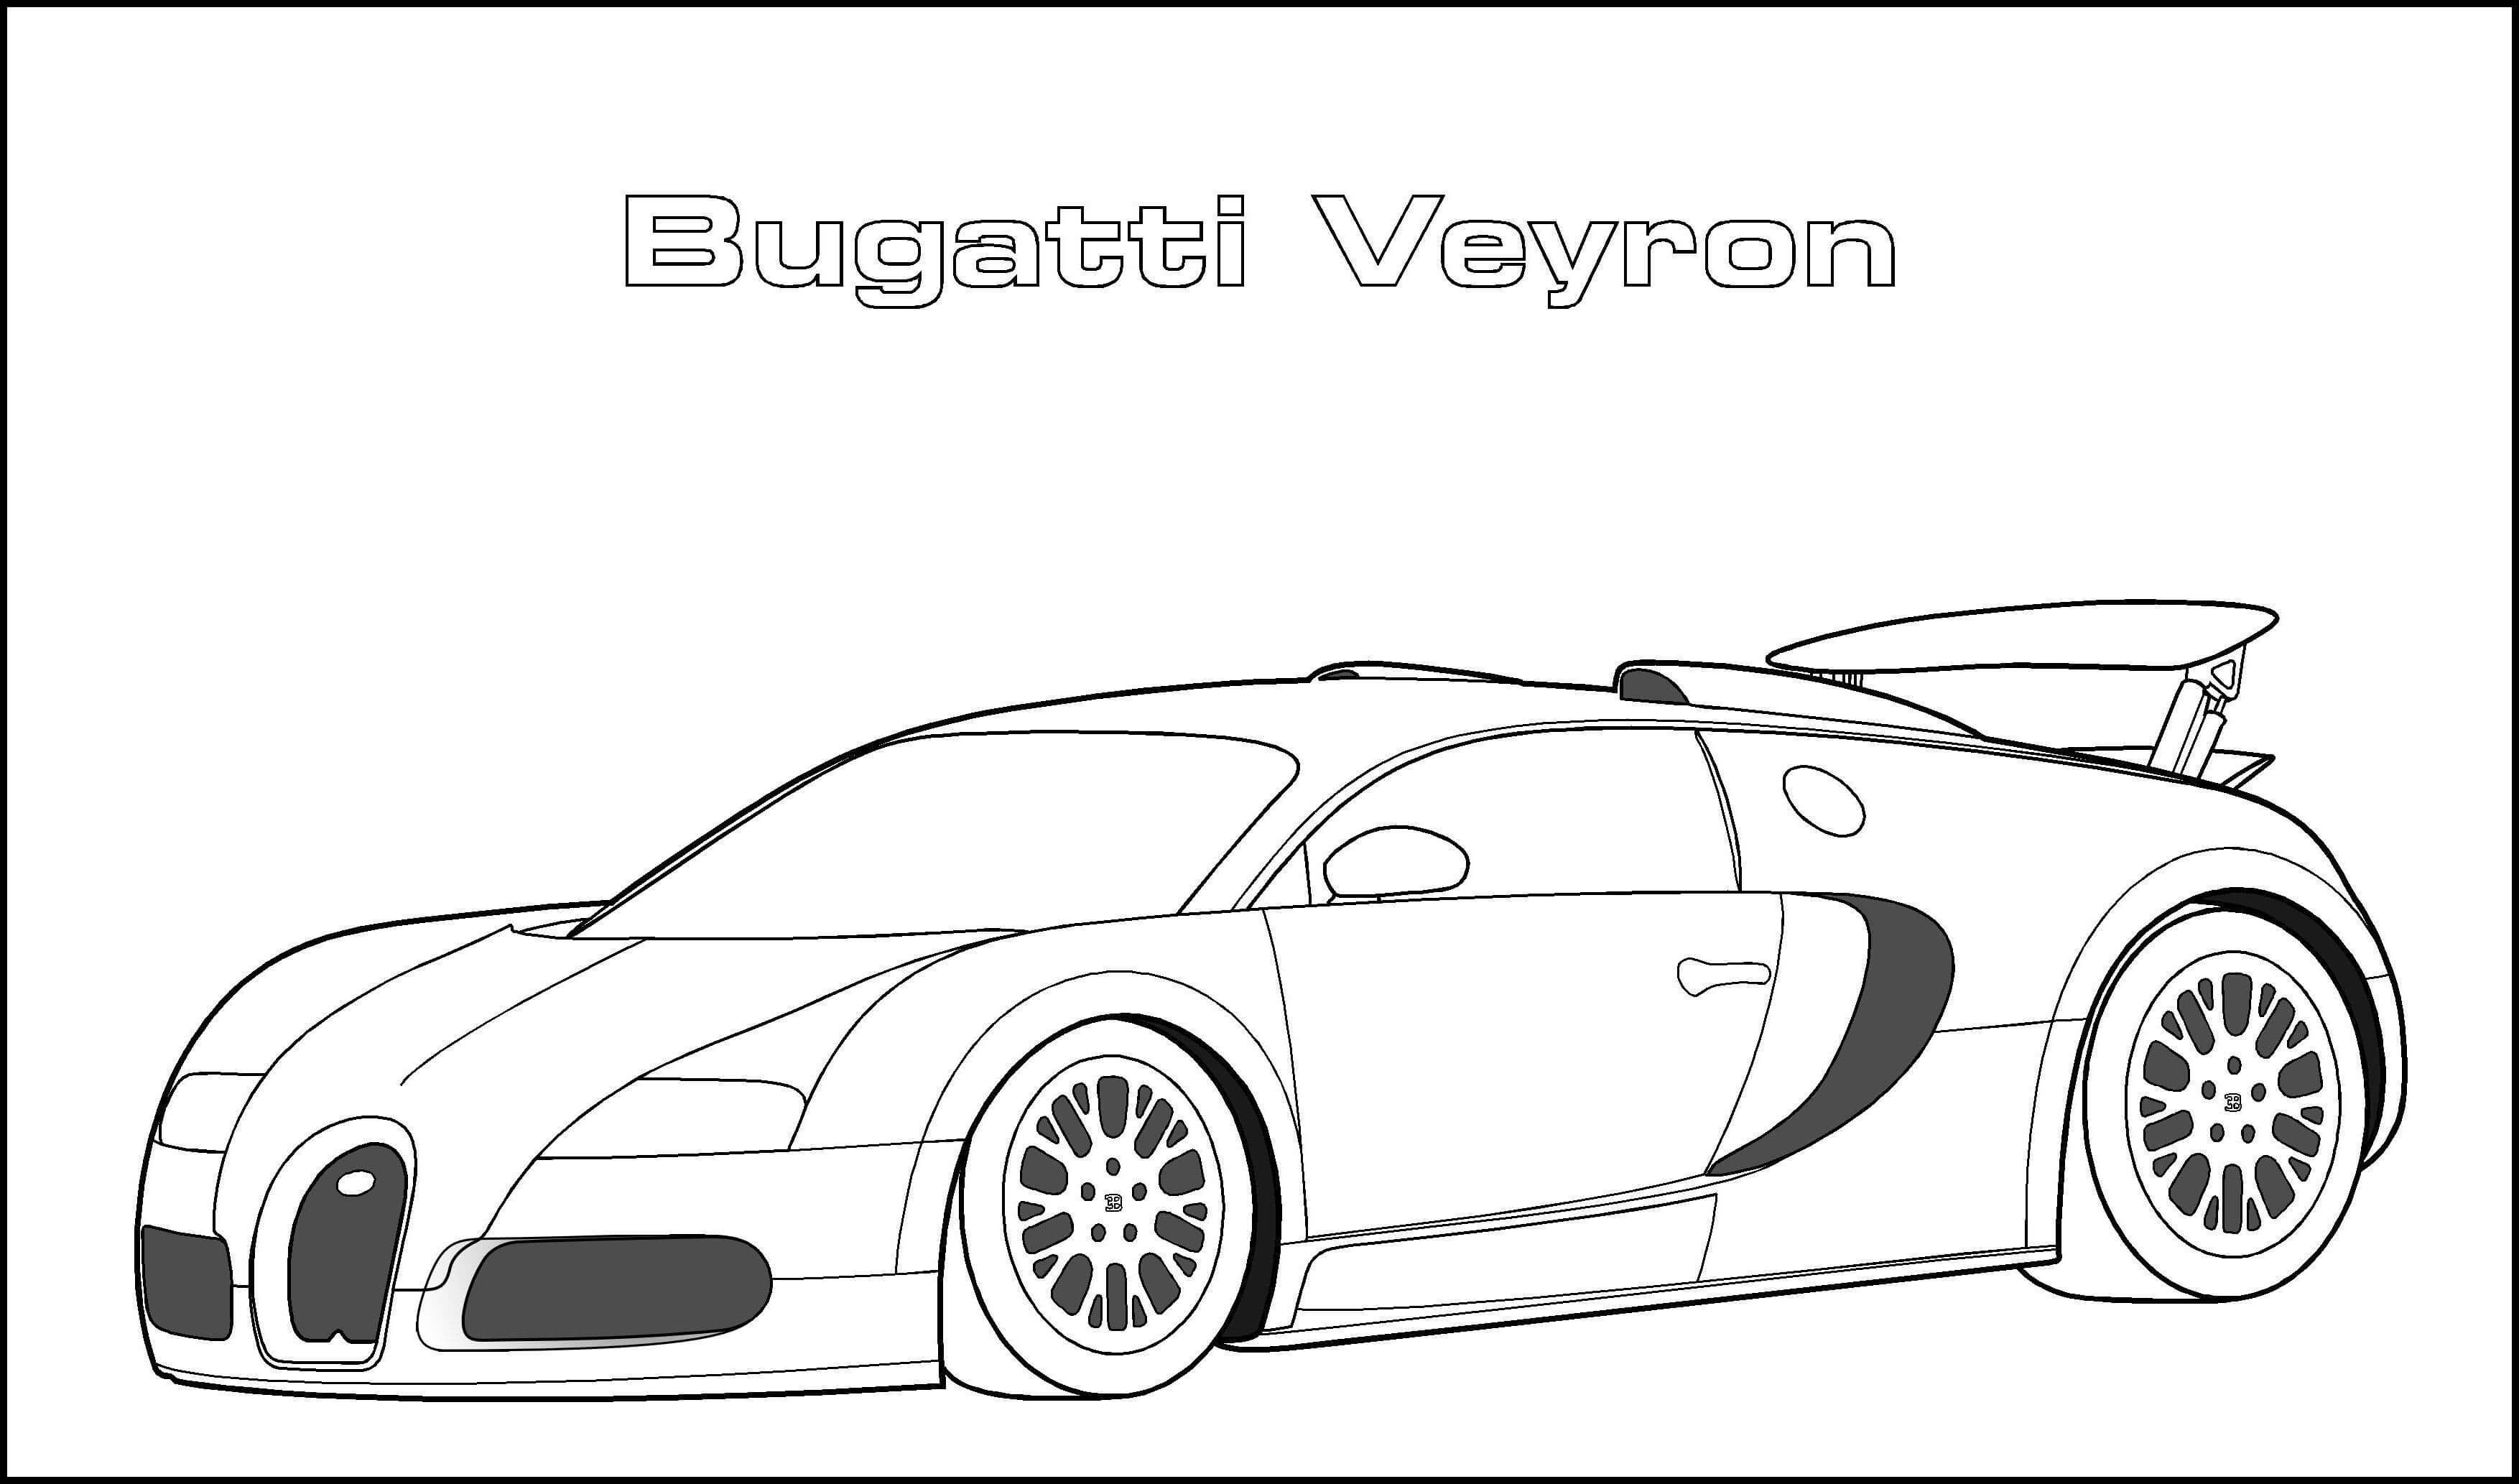 Free Coloring Pages Sports Cars. Sports Cars Coloring Pages  Bing images Pin by Miranda Download Best HD Wallpapers on